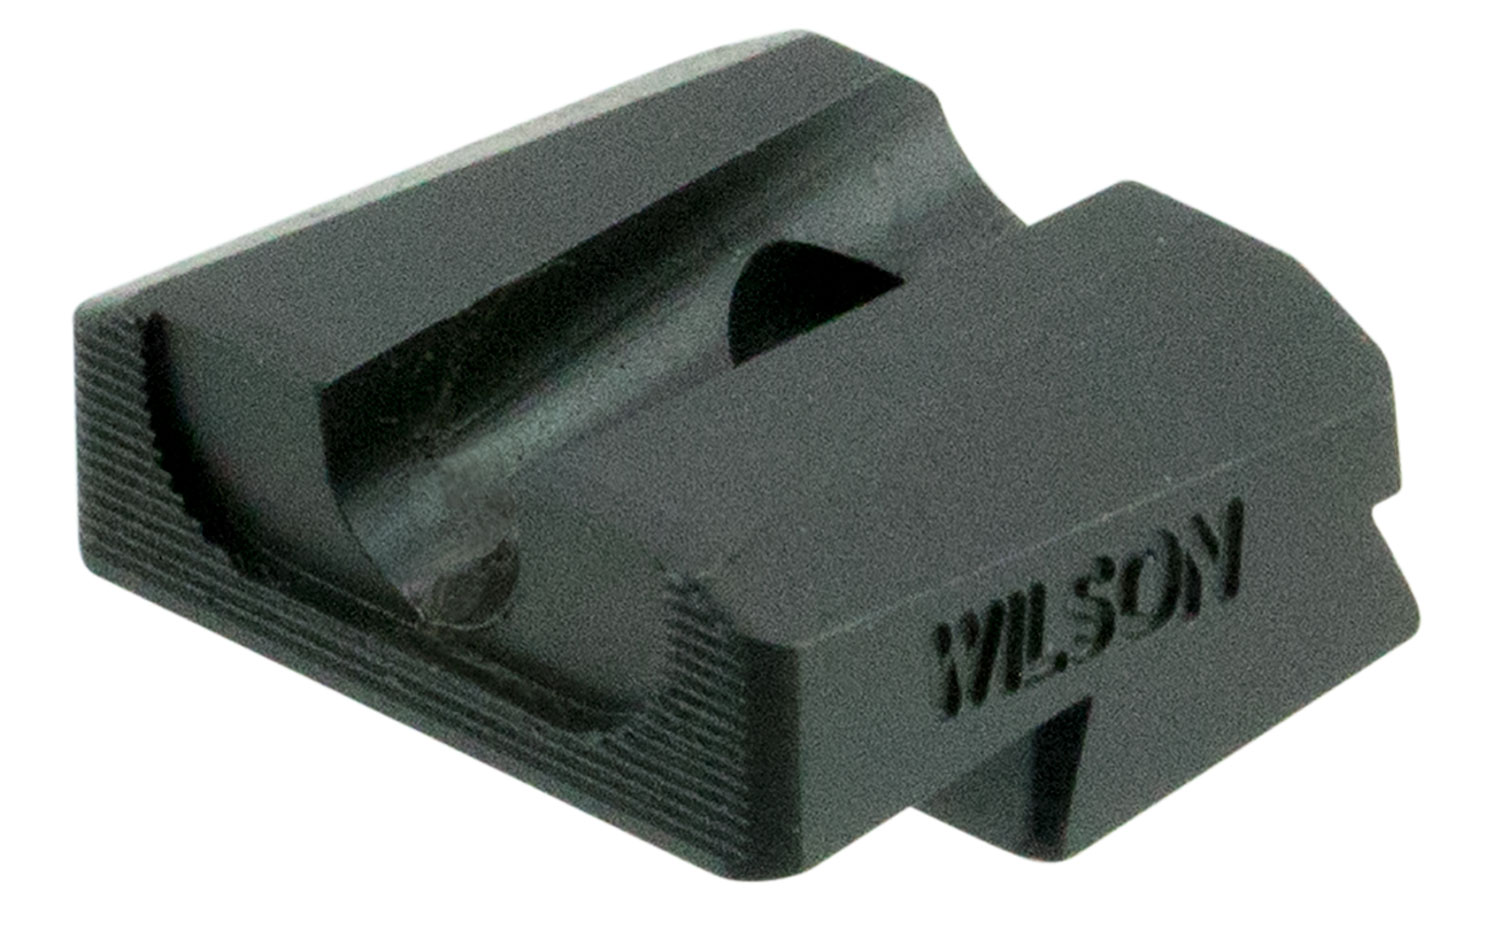 WILS 632   BATTLESIGHT REAR .290 BER92